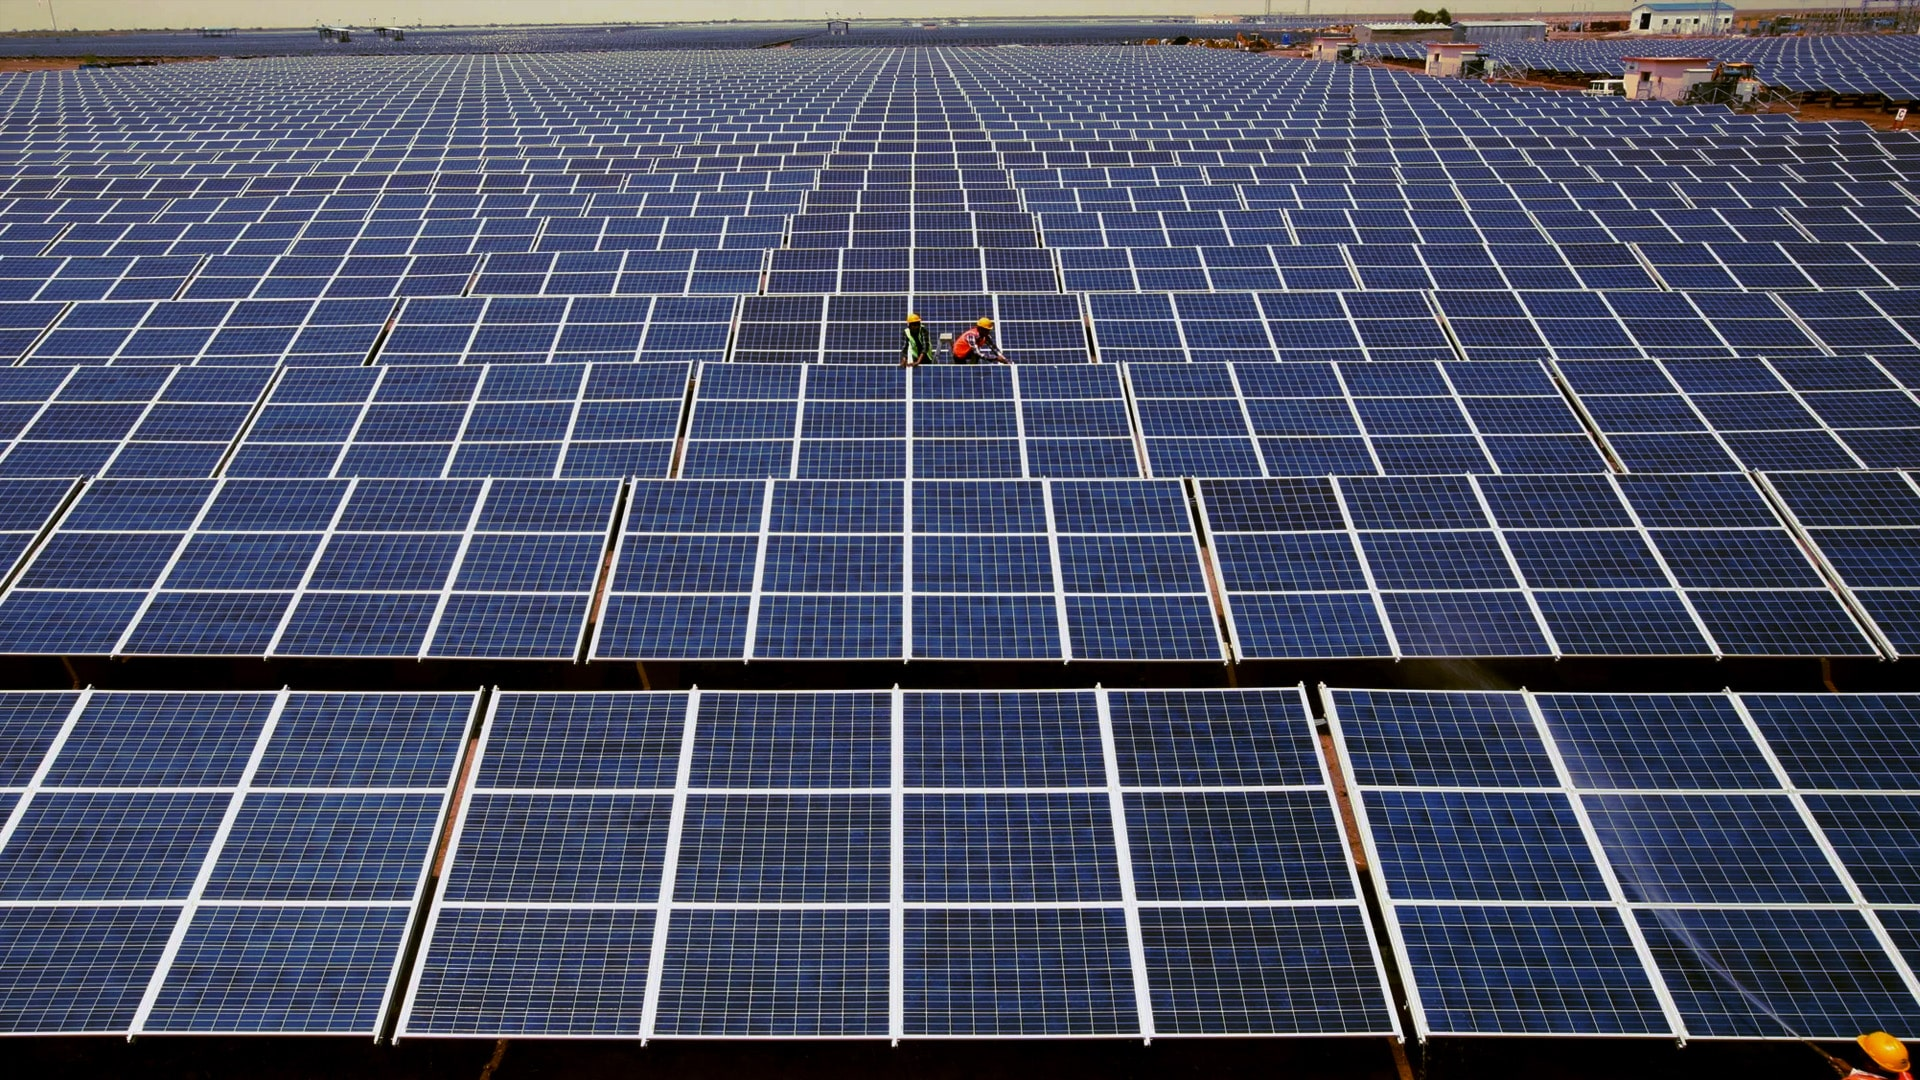 India, US energy partnership supports sustainable development- Official